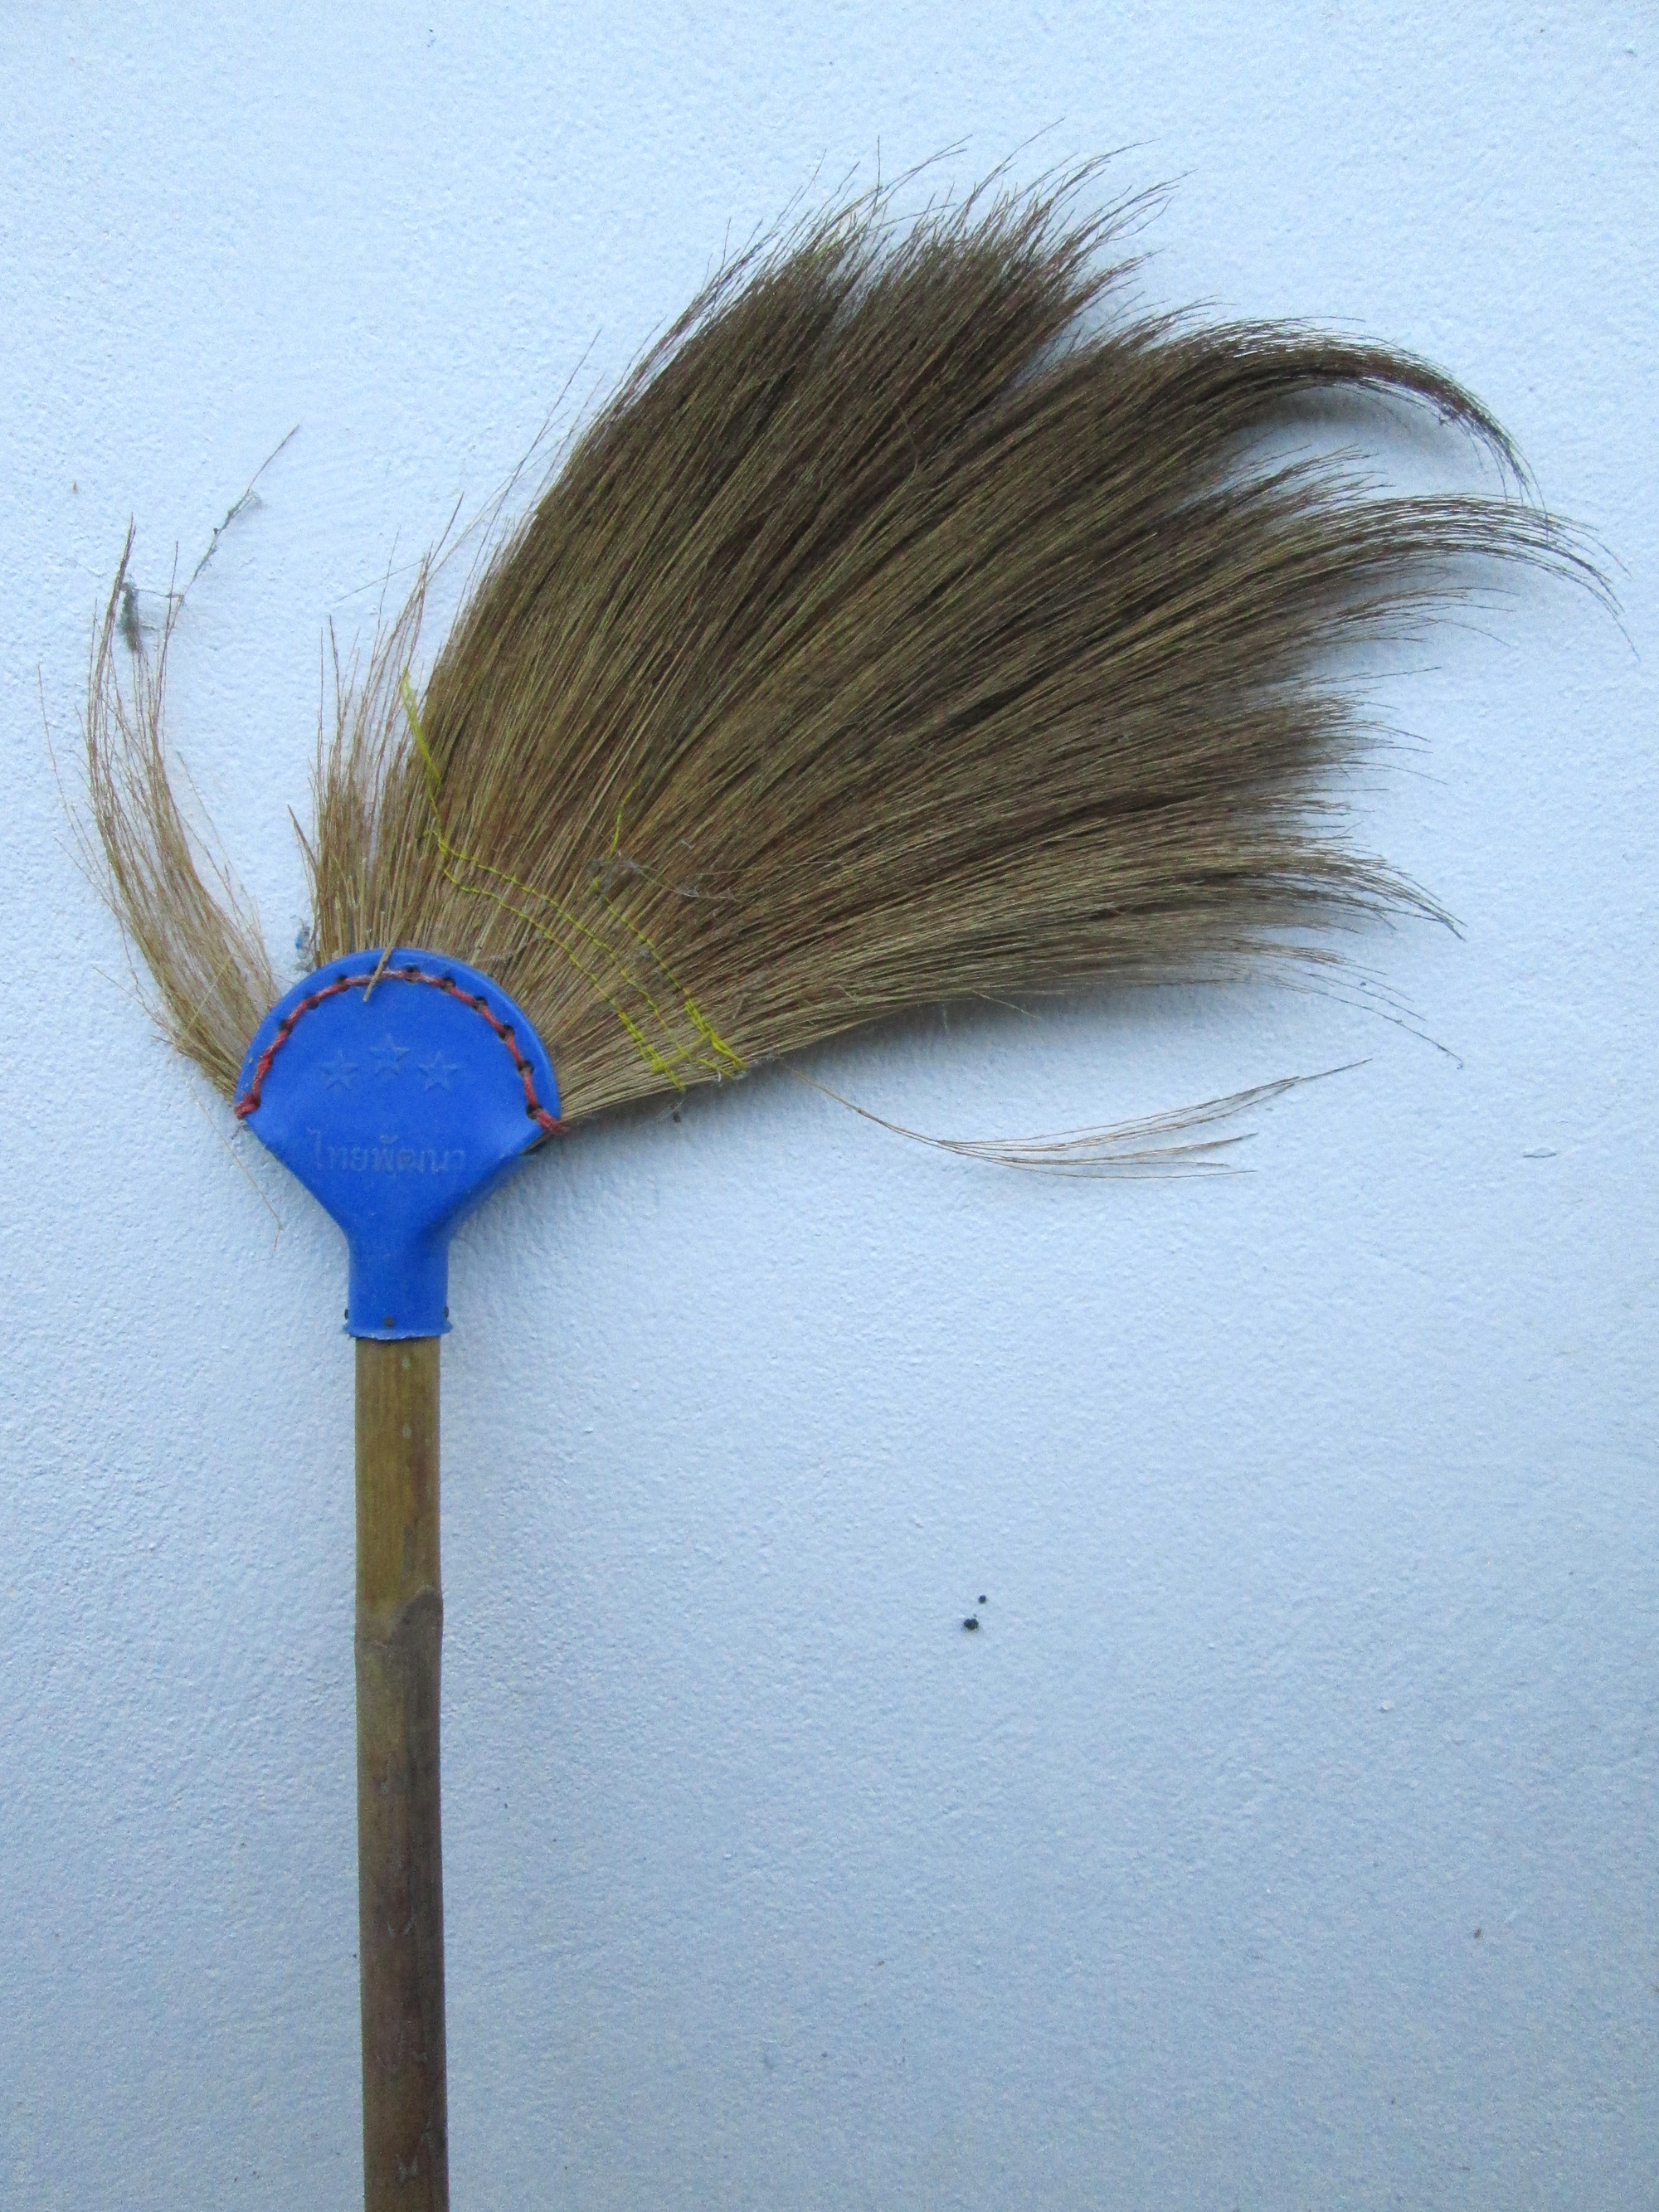 Old broomstick photo